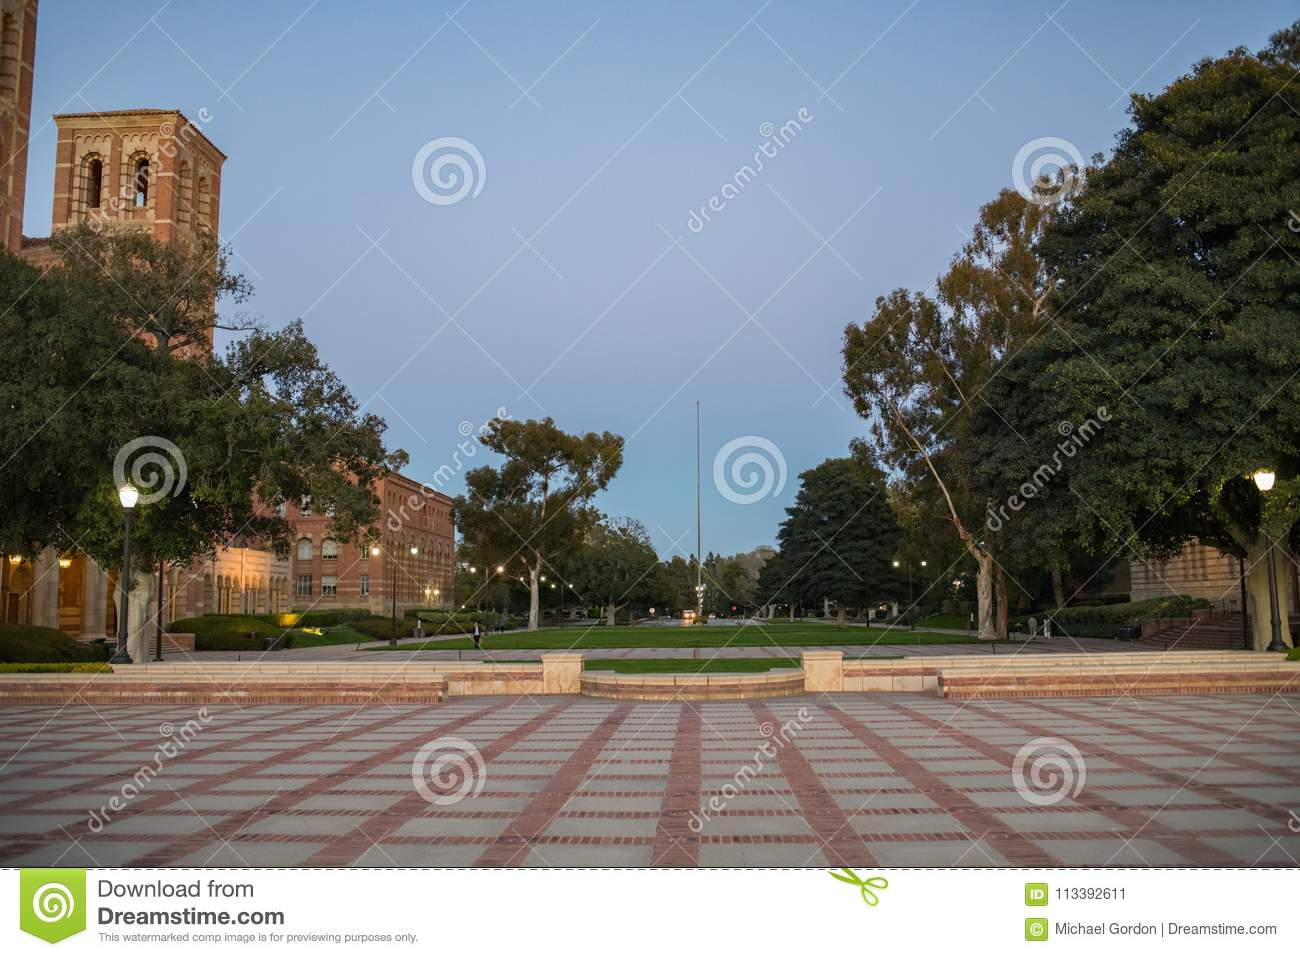 Royce Hall no terreno do University of California, Los Angeles